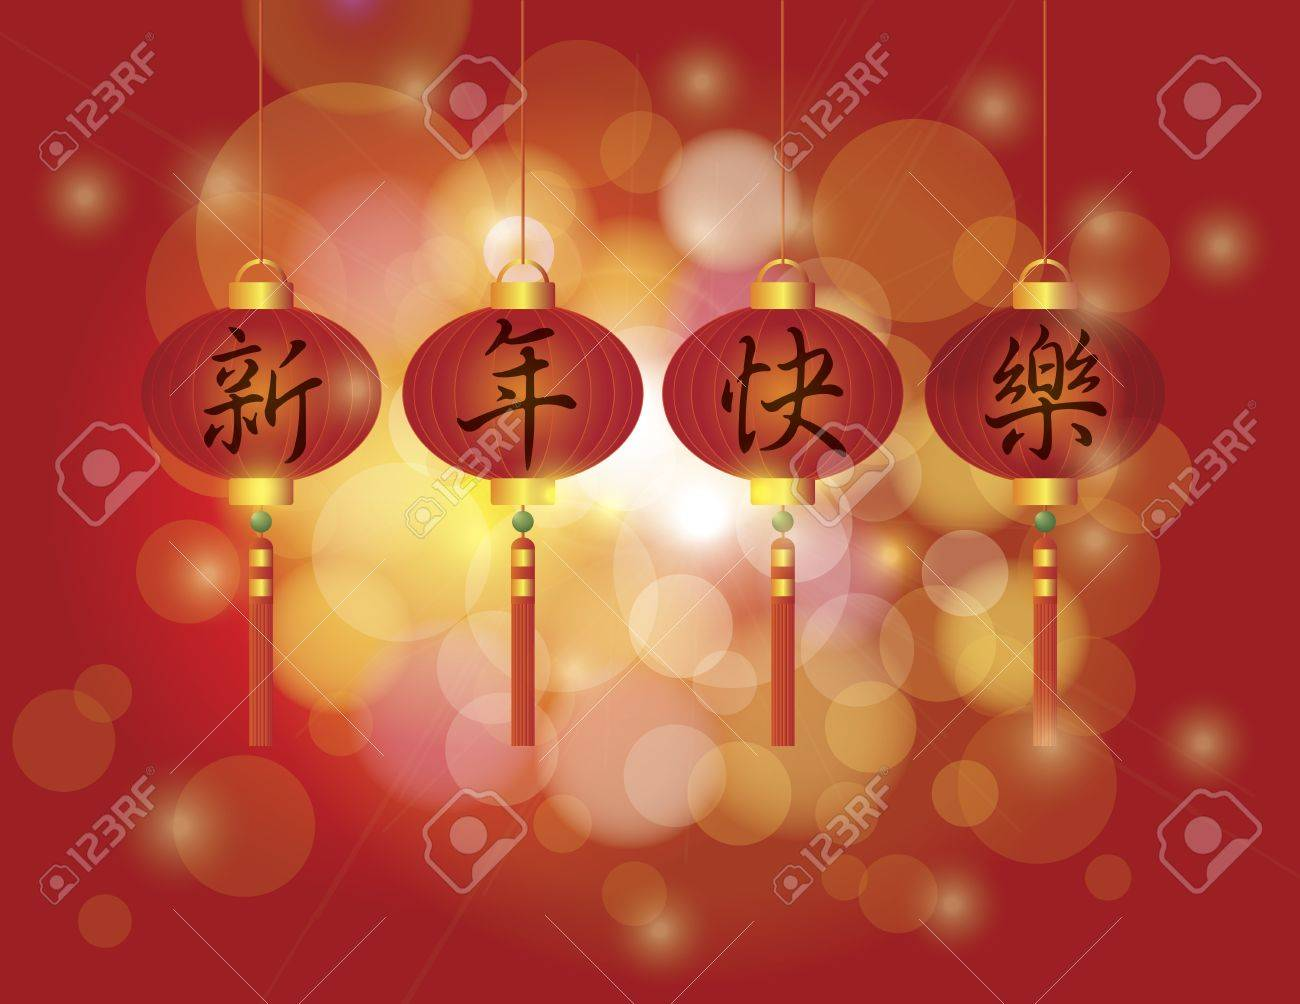 happy chinese lunar new year calligraphy text on red lanterns with red bokeh background illustration stock - Chinese Lunar New Year